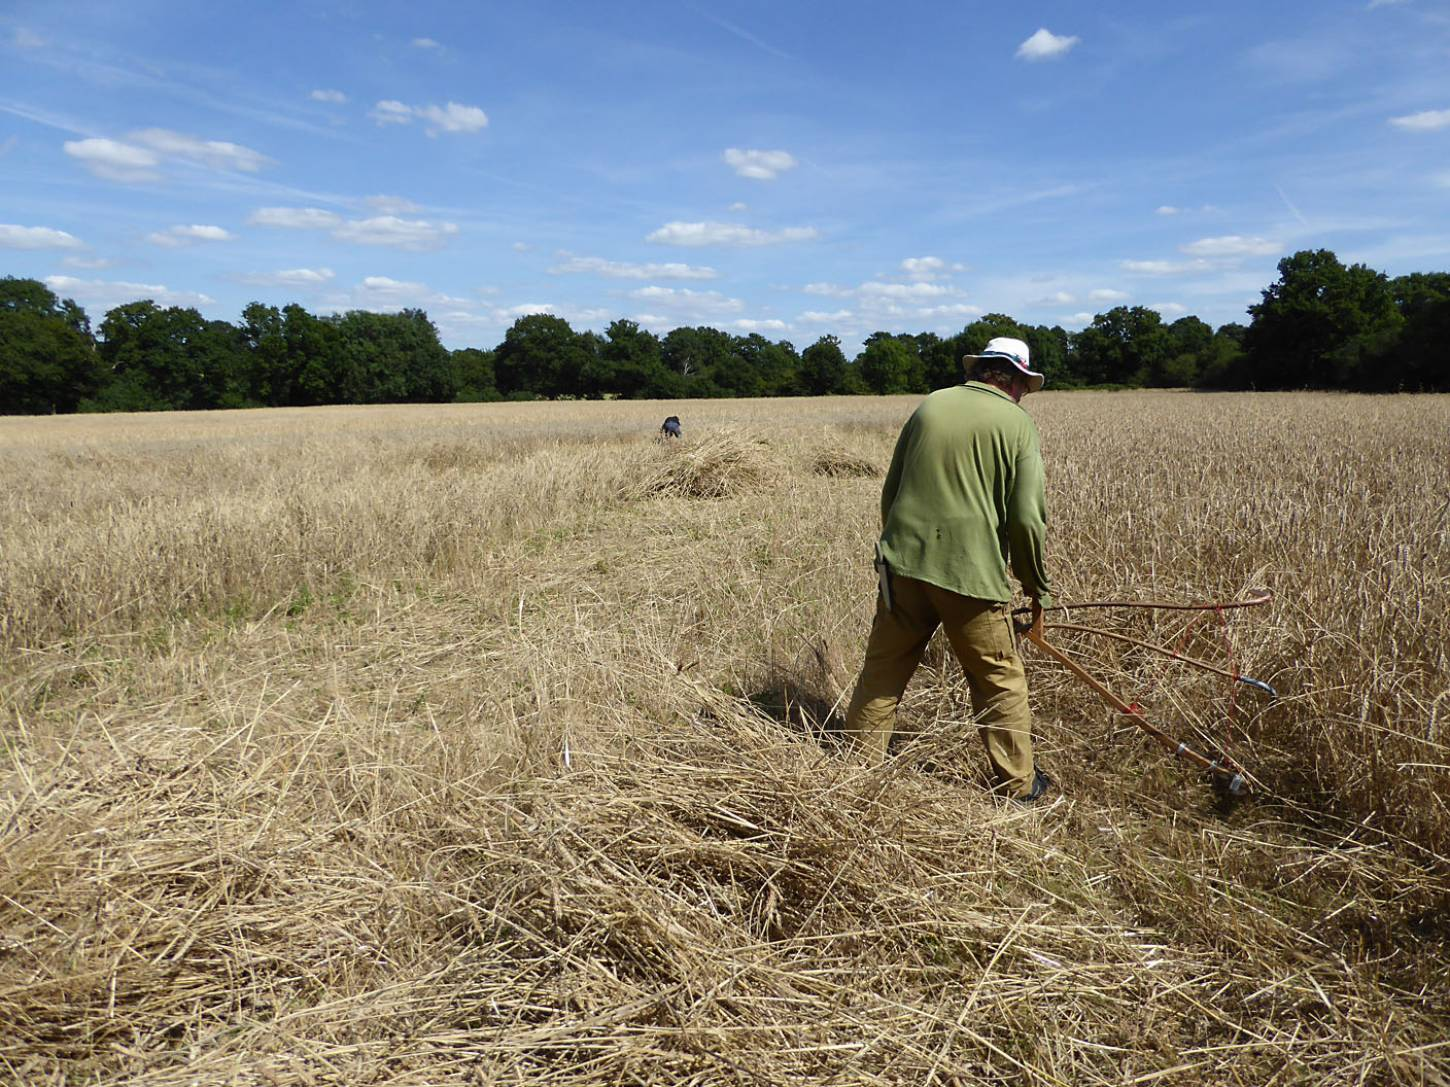 Michael Hazell in action with the scythe, our manual harvest at Lodge Farm - 2:05pm&nbsp;13<sup>th</sup>&nbsp;Aug.&nbsp;'17